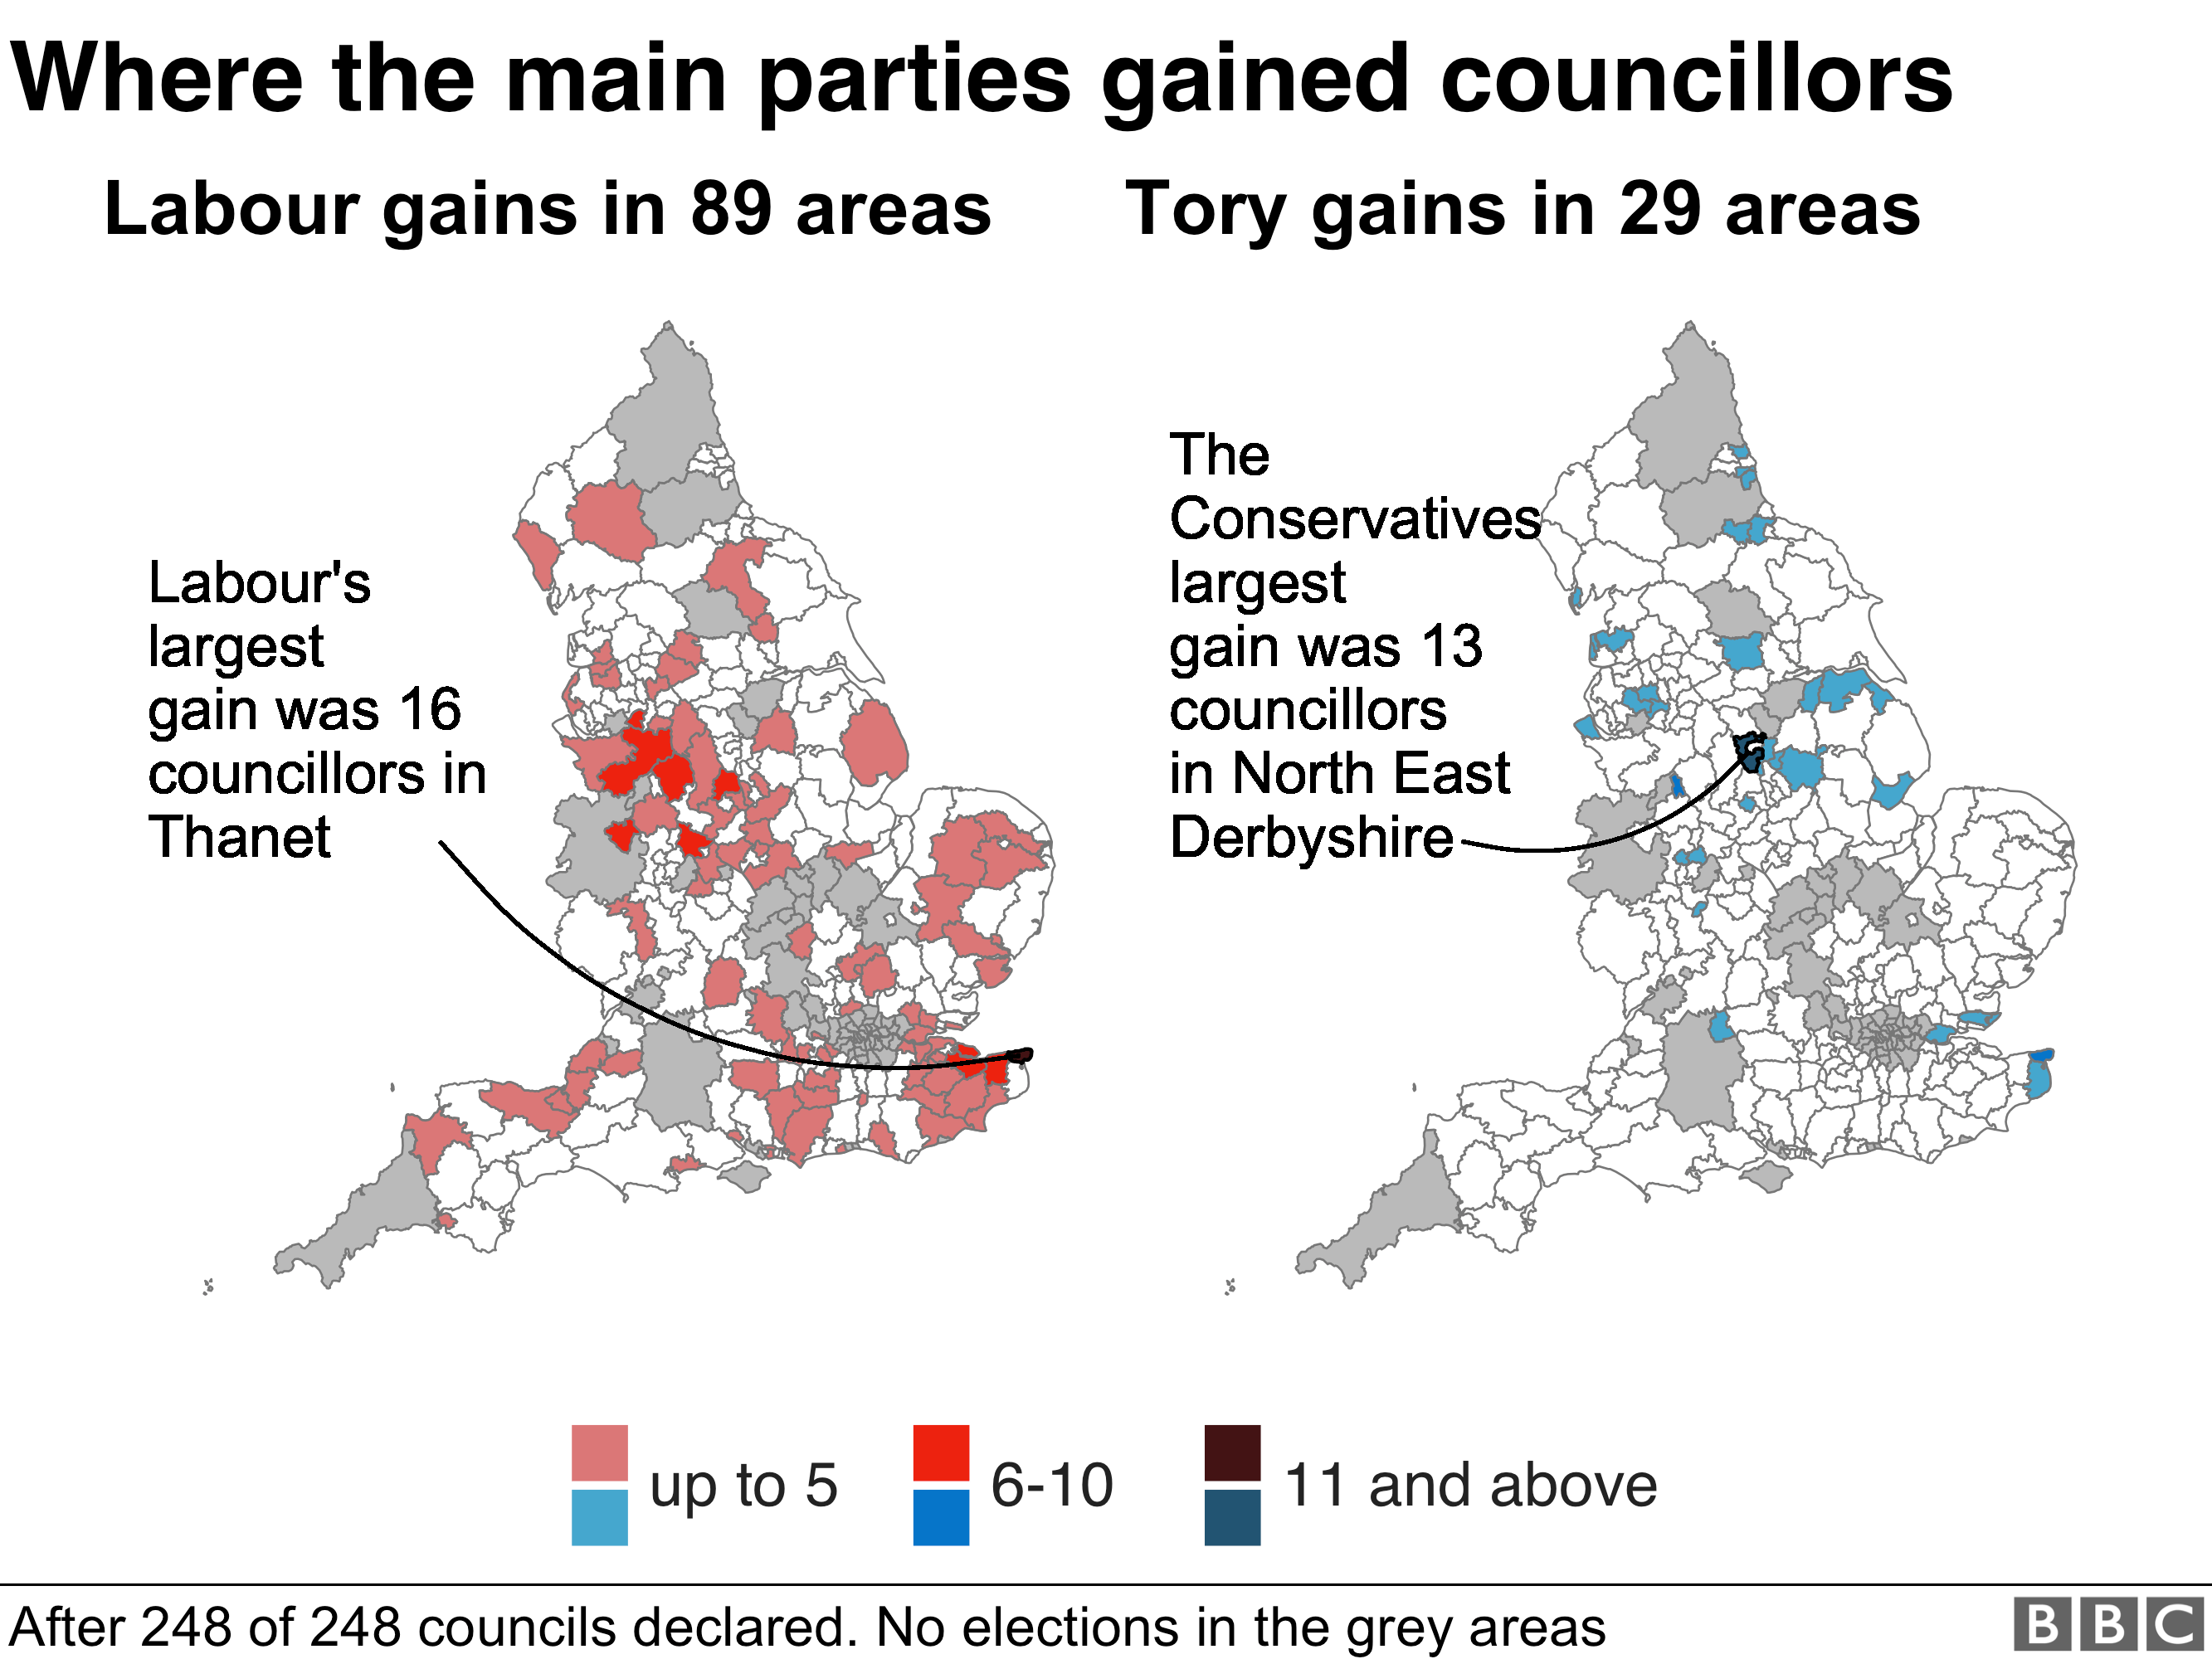 Labour gained seats on 89 councils while the Tories only gained in 29 areas